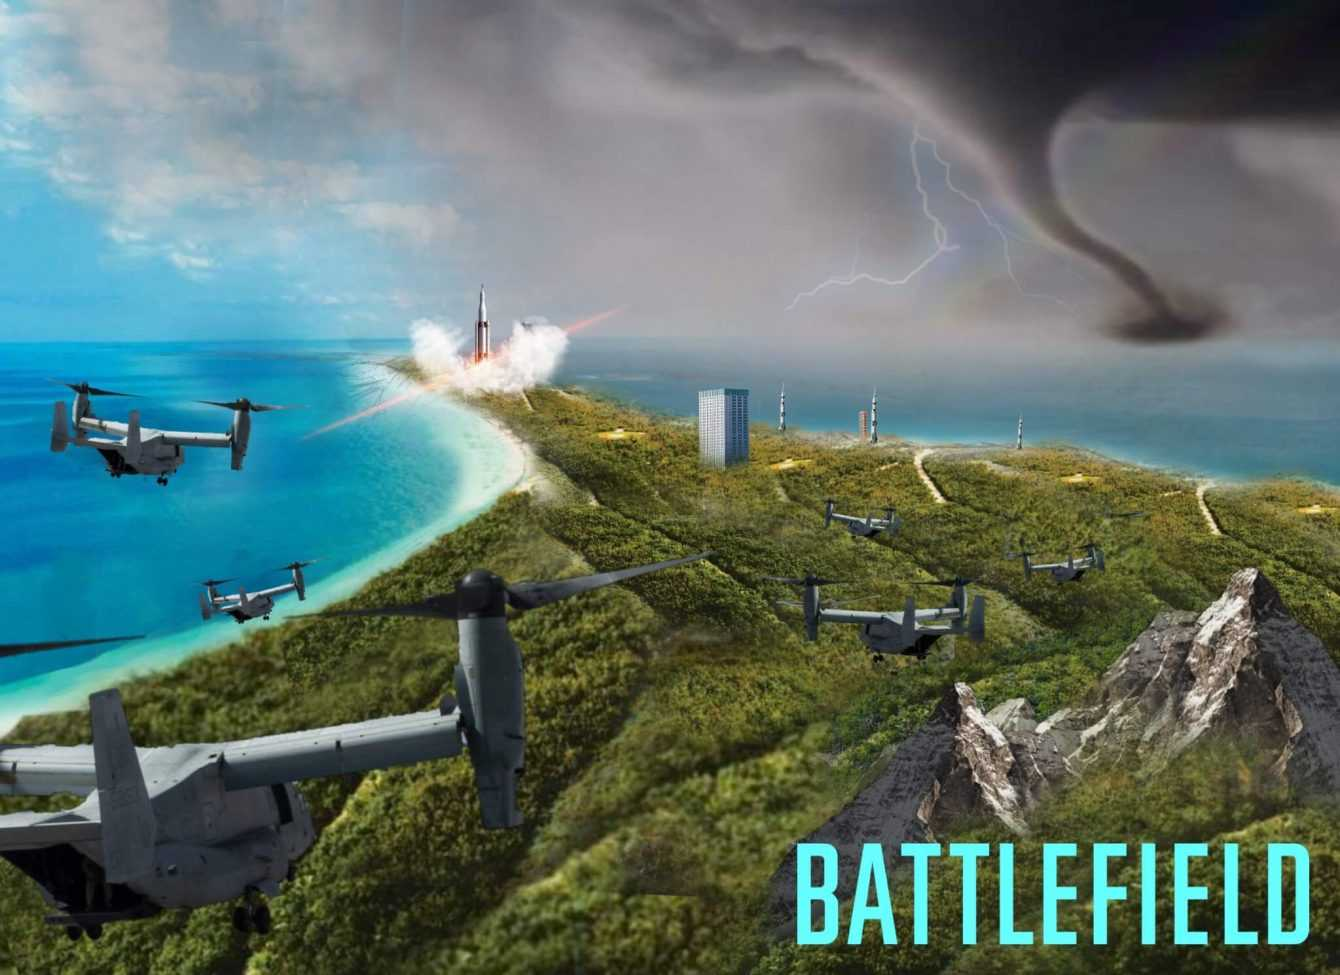 Battlefield 6: new leaks on the map and gameplay